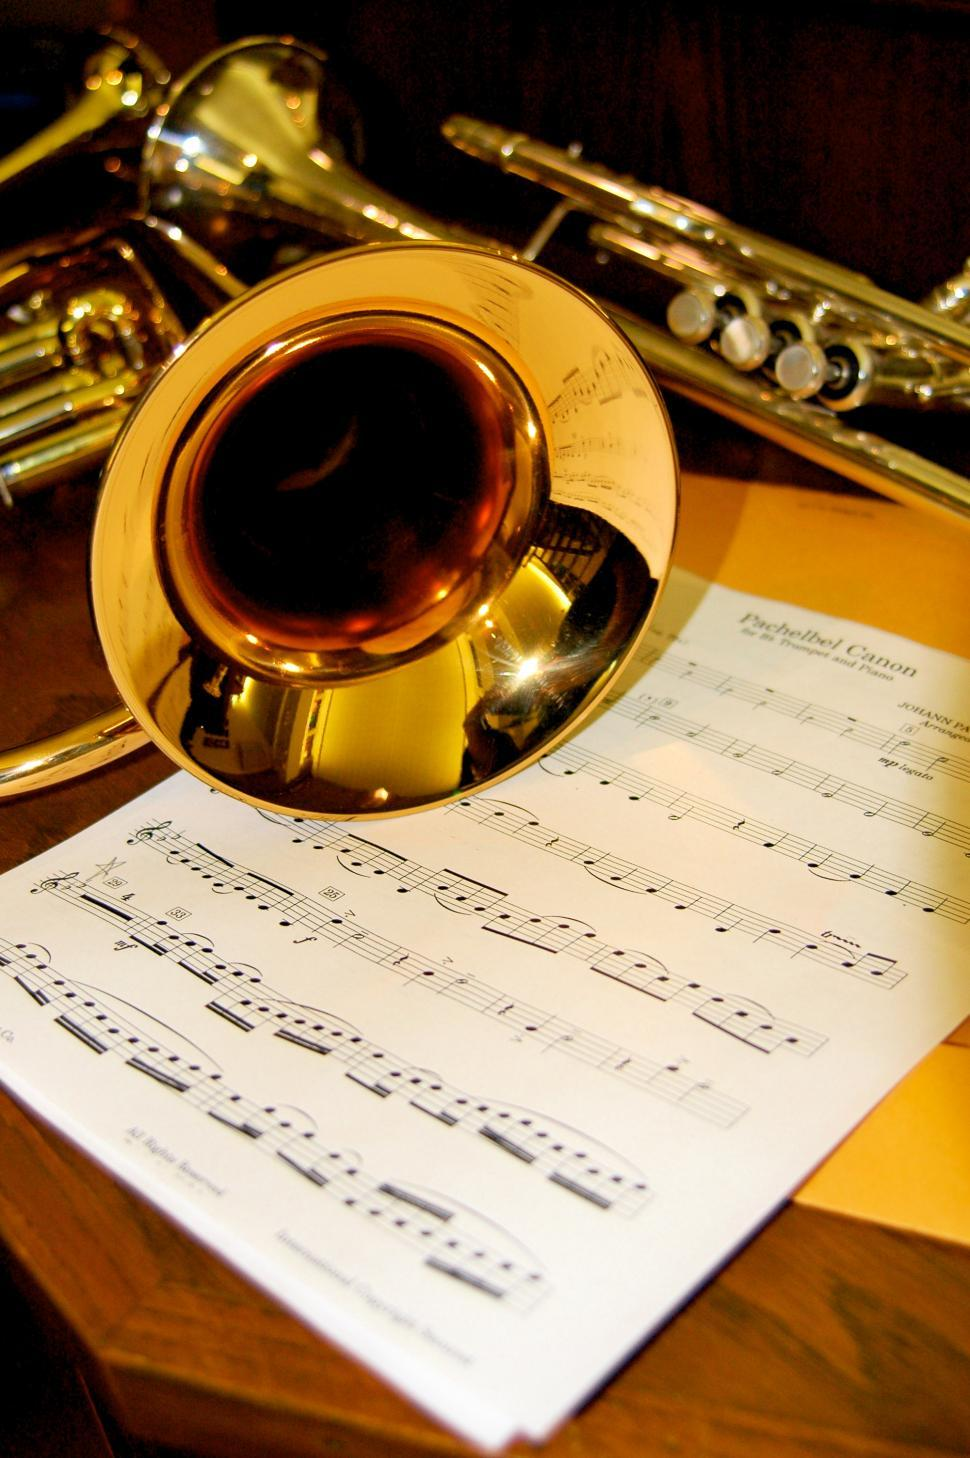 Free stock photo of Trumpet and Music Sheet.  Bronze instrument with notes on music scales on sheet.